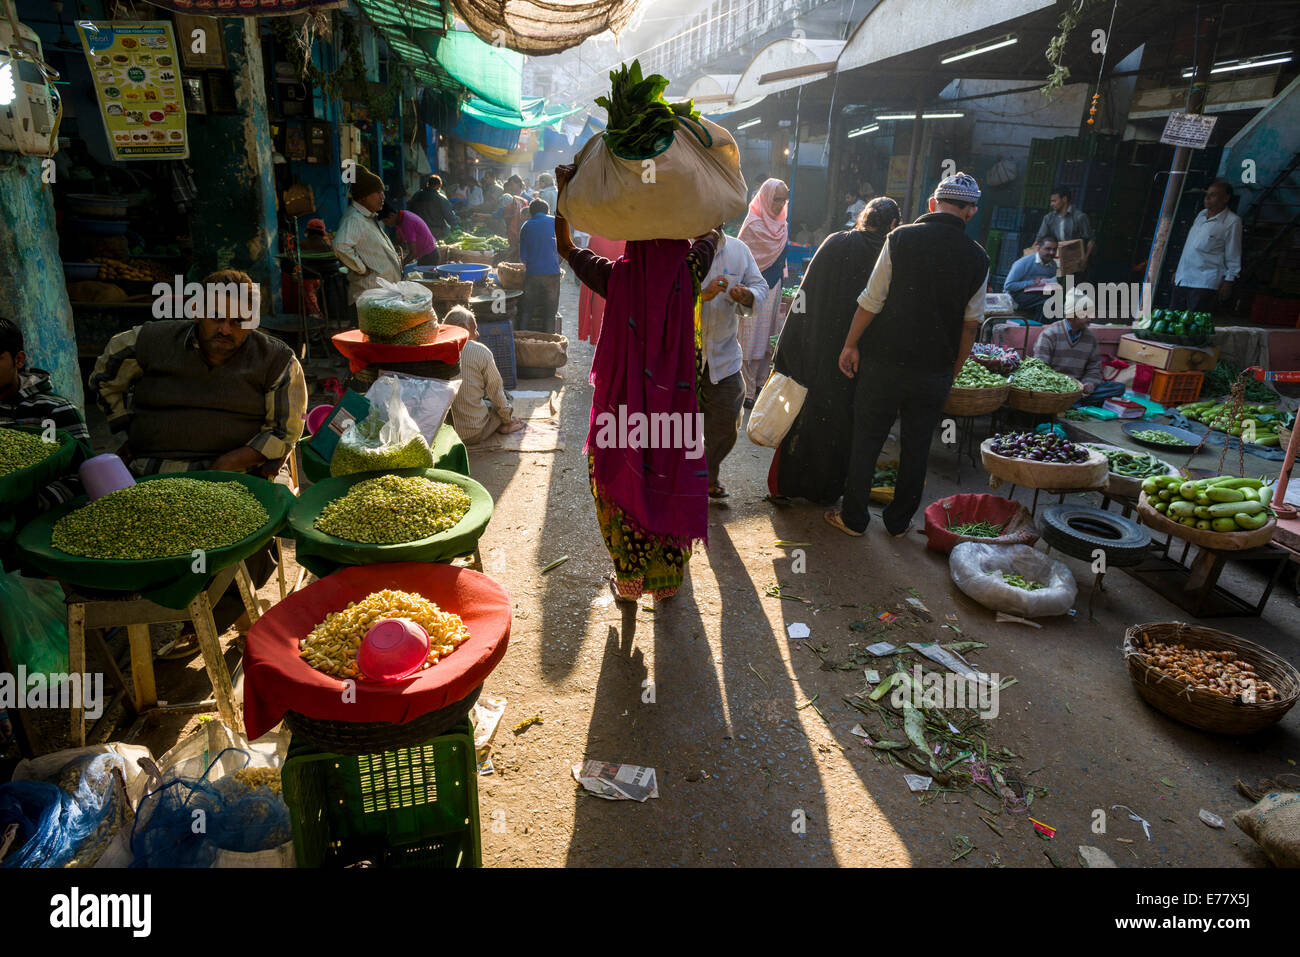 A woman is carrying a bag with vegetables on her head through the vegetable market, Ahmedabad, Gujarat, India - Stock Image